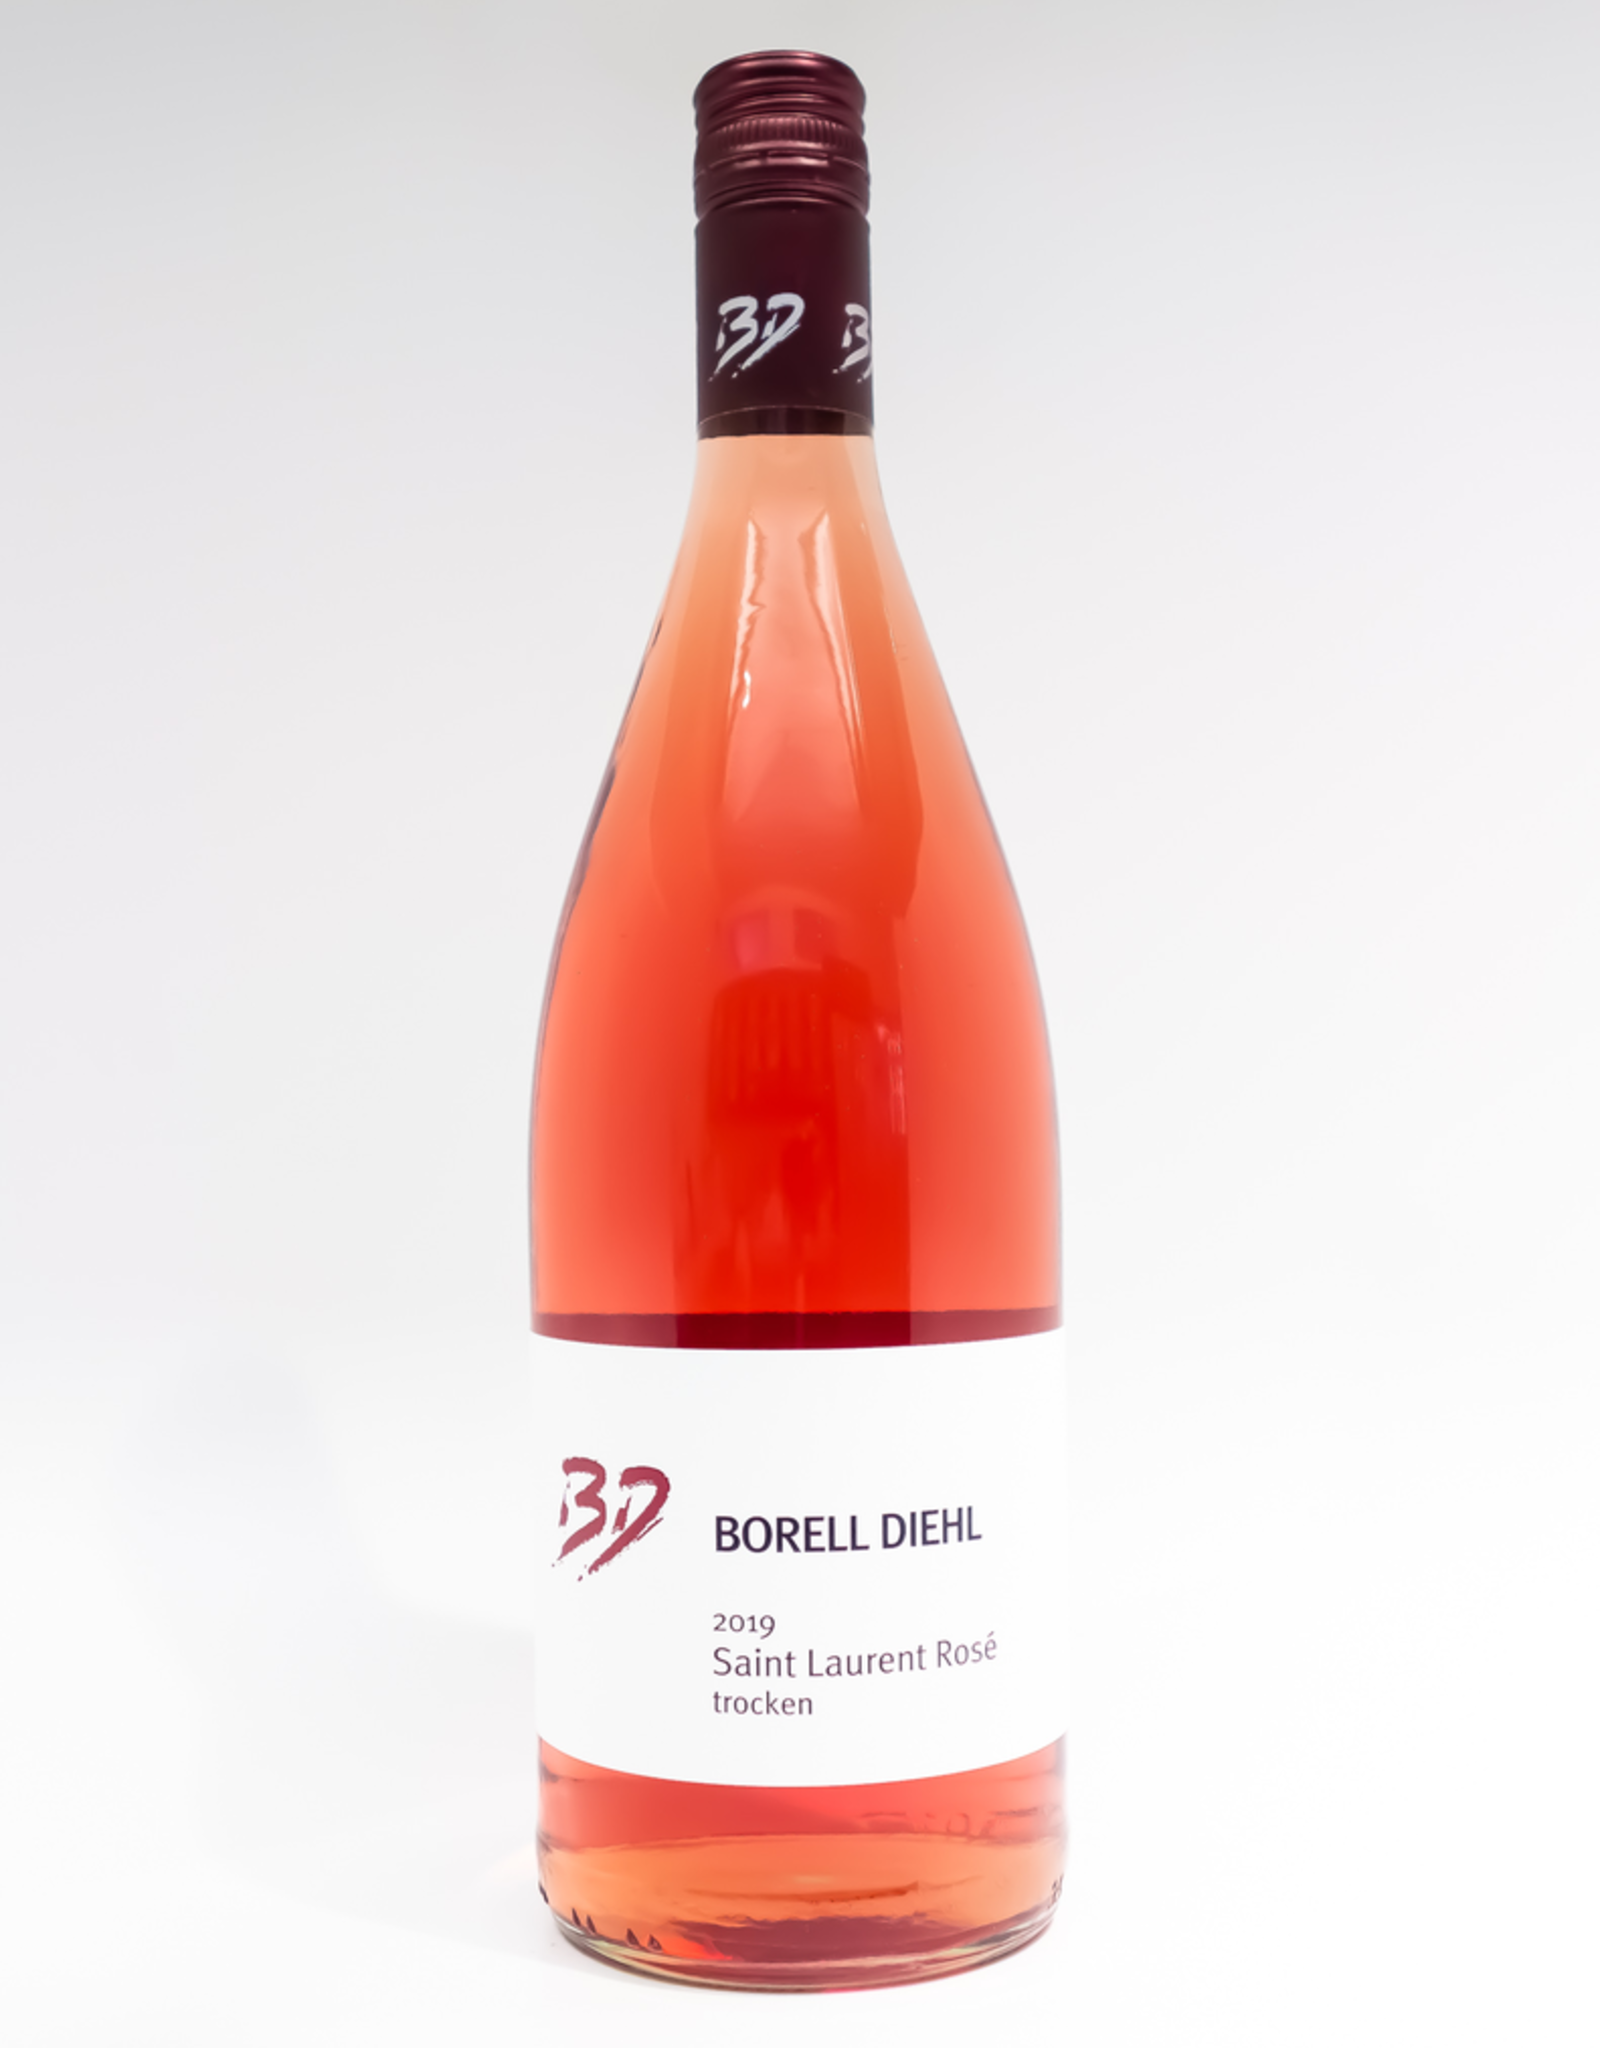 Wine-Rose Borell Diehl Saint Laurent Rose Trocken Pfalz 2019 1L